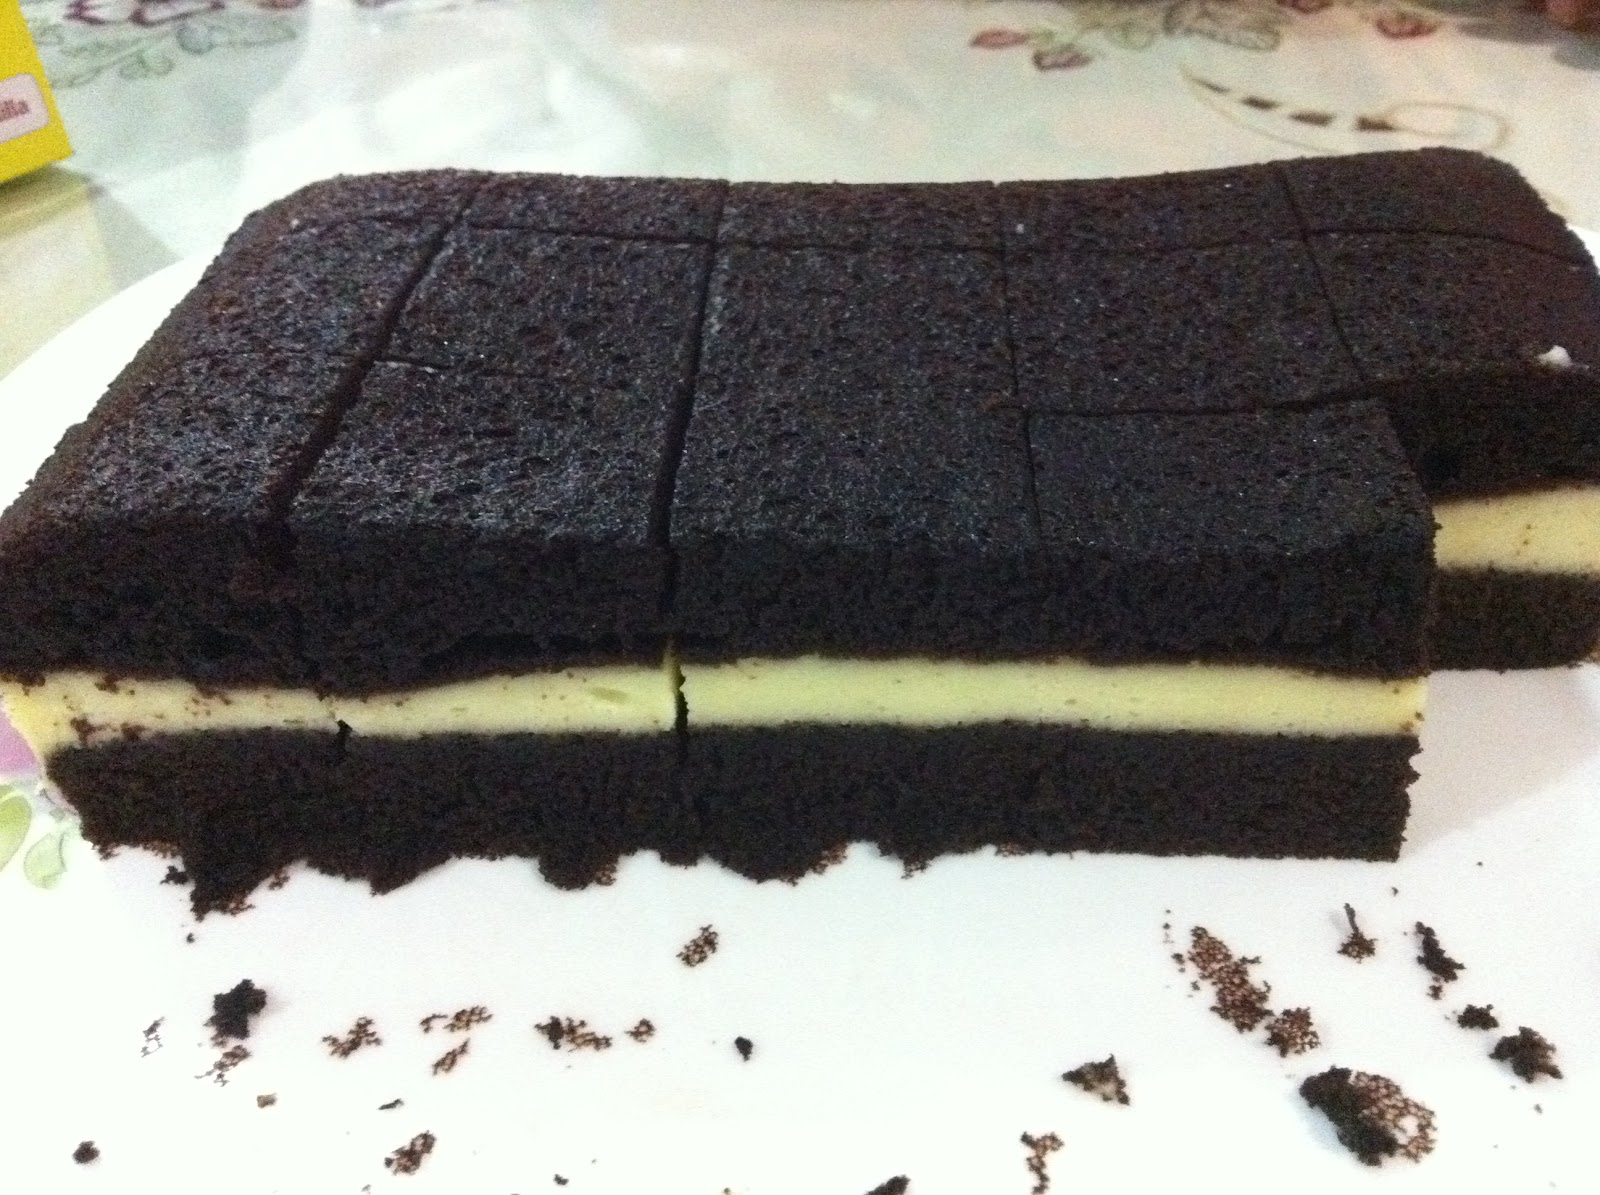 KEK LAPIS KUKUS CREAM CHEESE